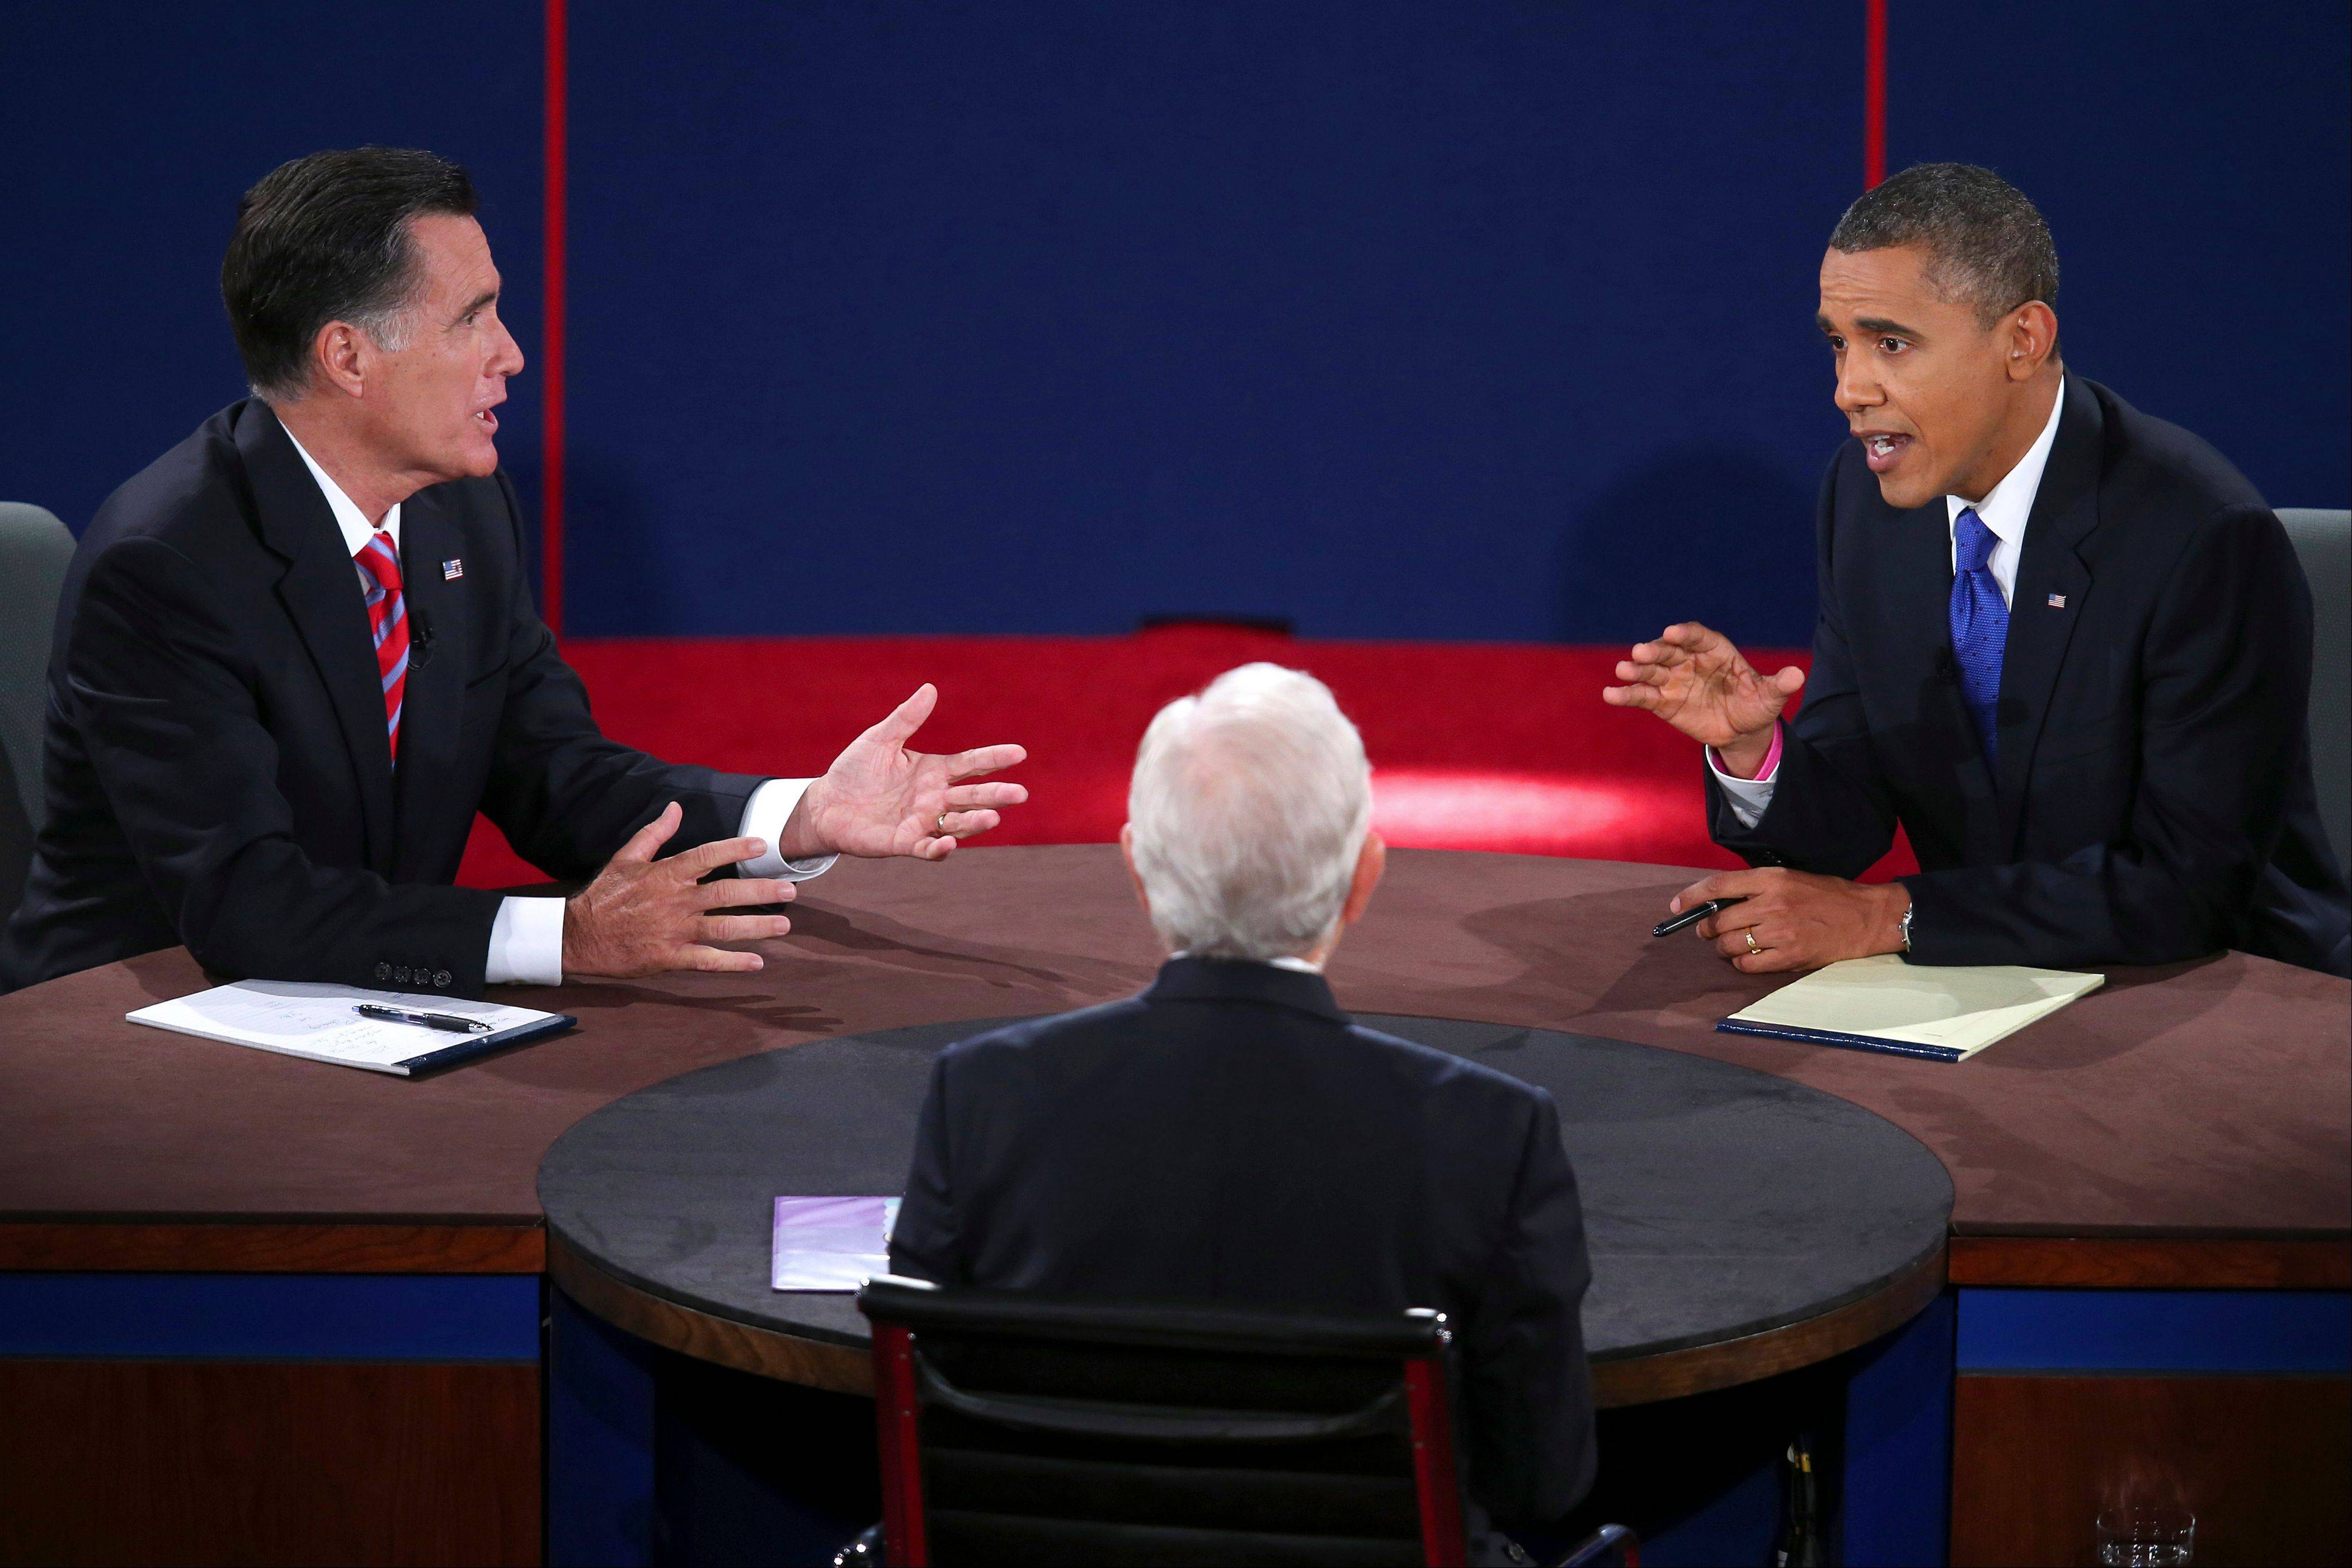 Republican presidential nominee Mitt Romney and President Barack Obama answer a question from moderator Bob Schieffer during the third presidential debate Monday at Lynn University in Boca Raton, Fla.